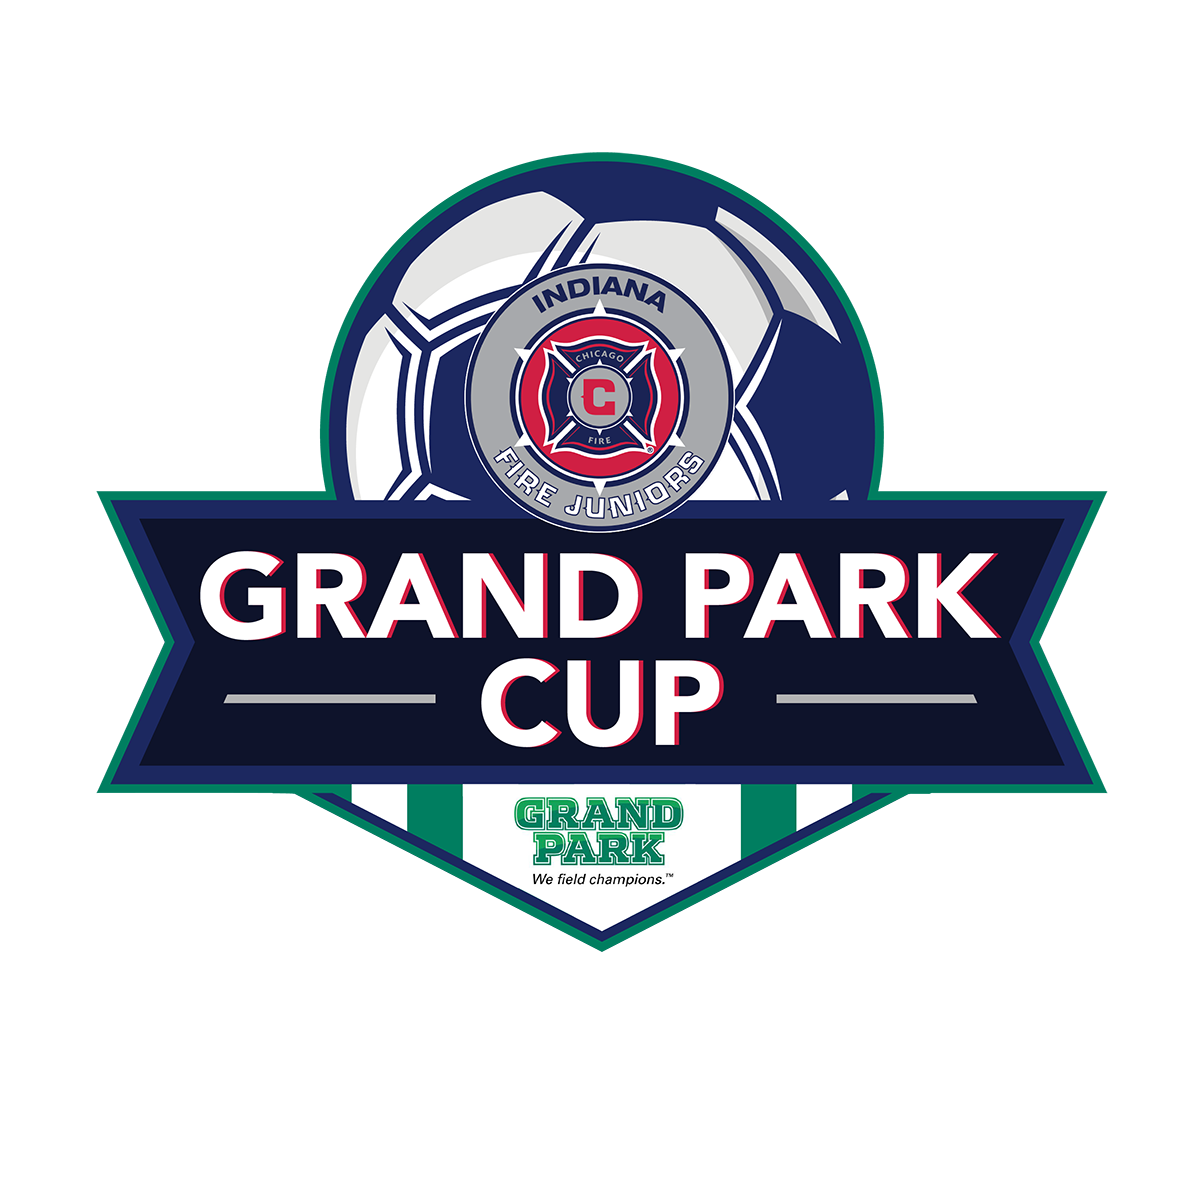 GrandParkCup2017-01.png